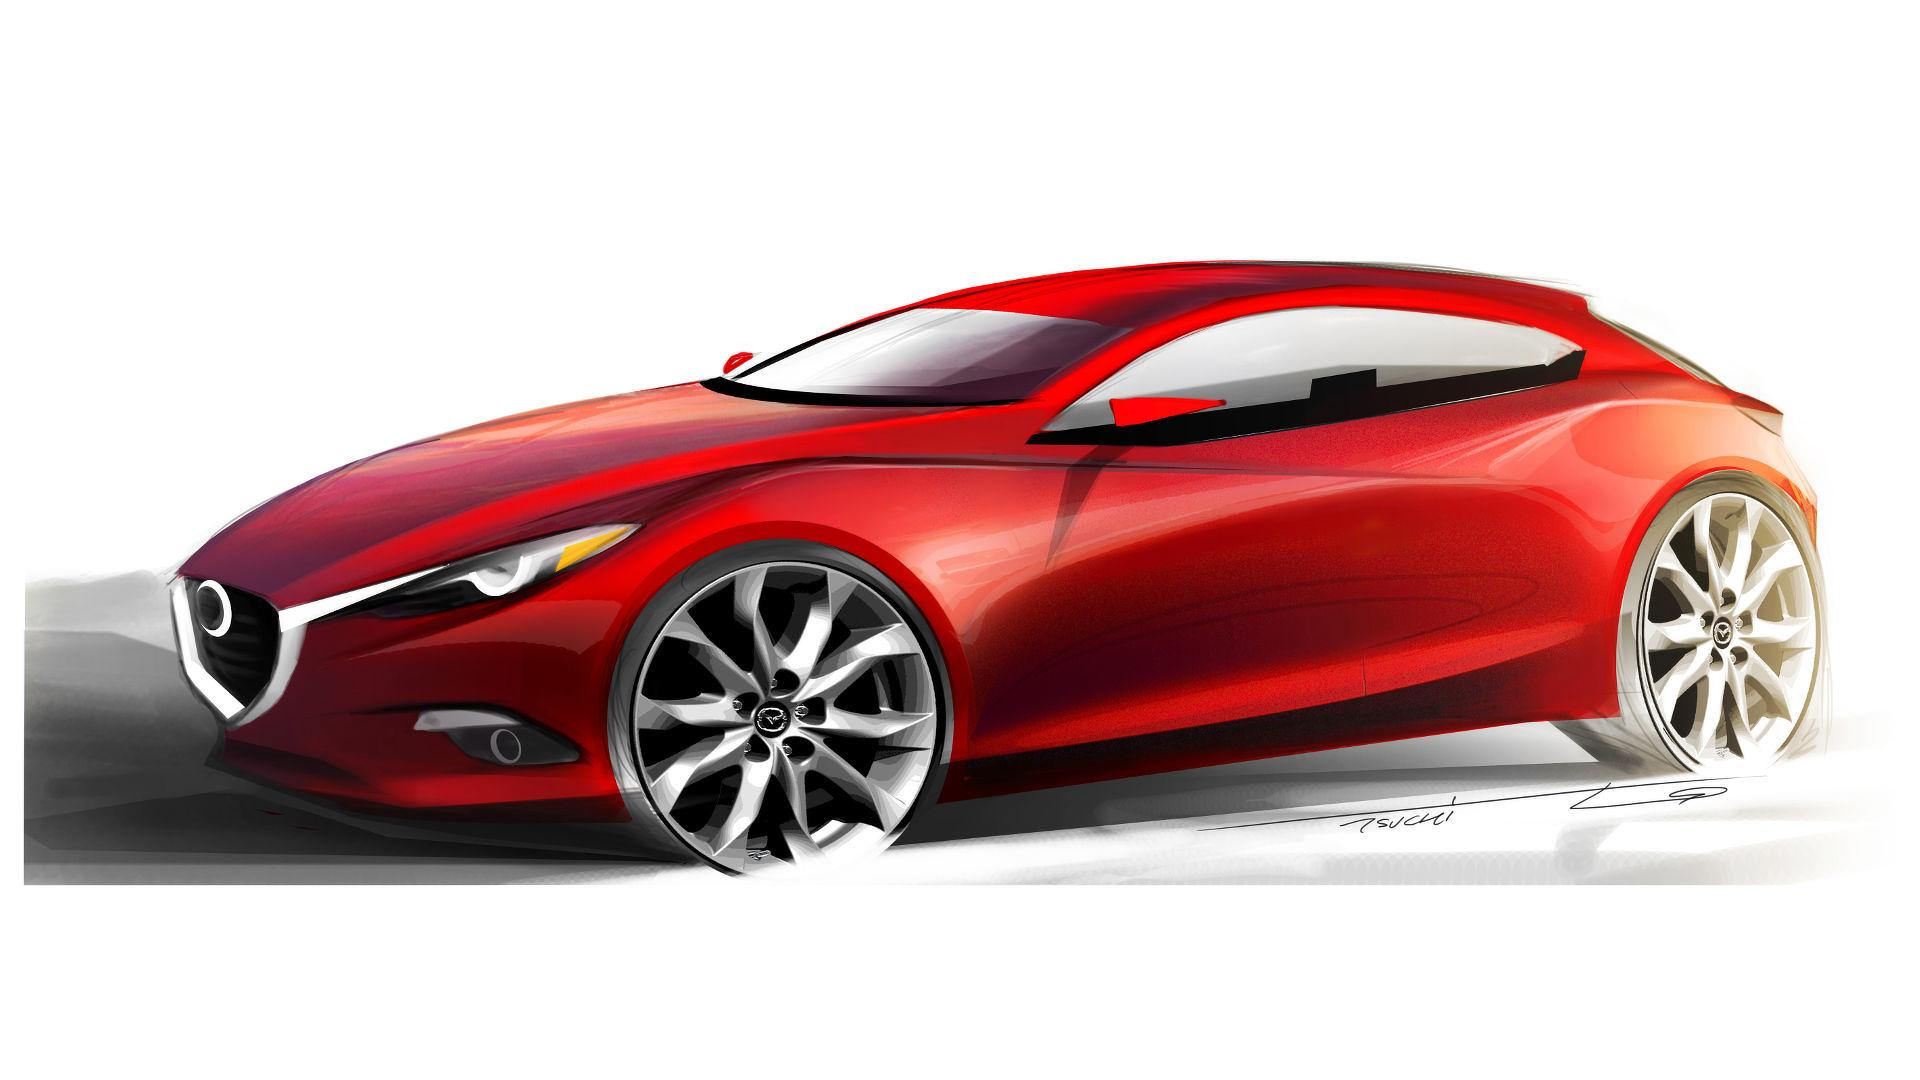 Next Gen Mazda3 With Sparkless Ignition Tech Coming To Frankfurt